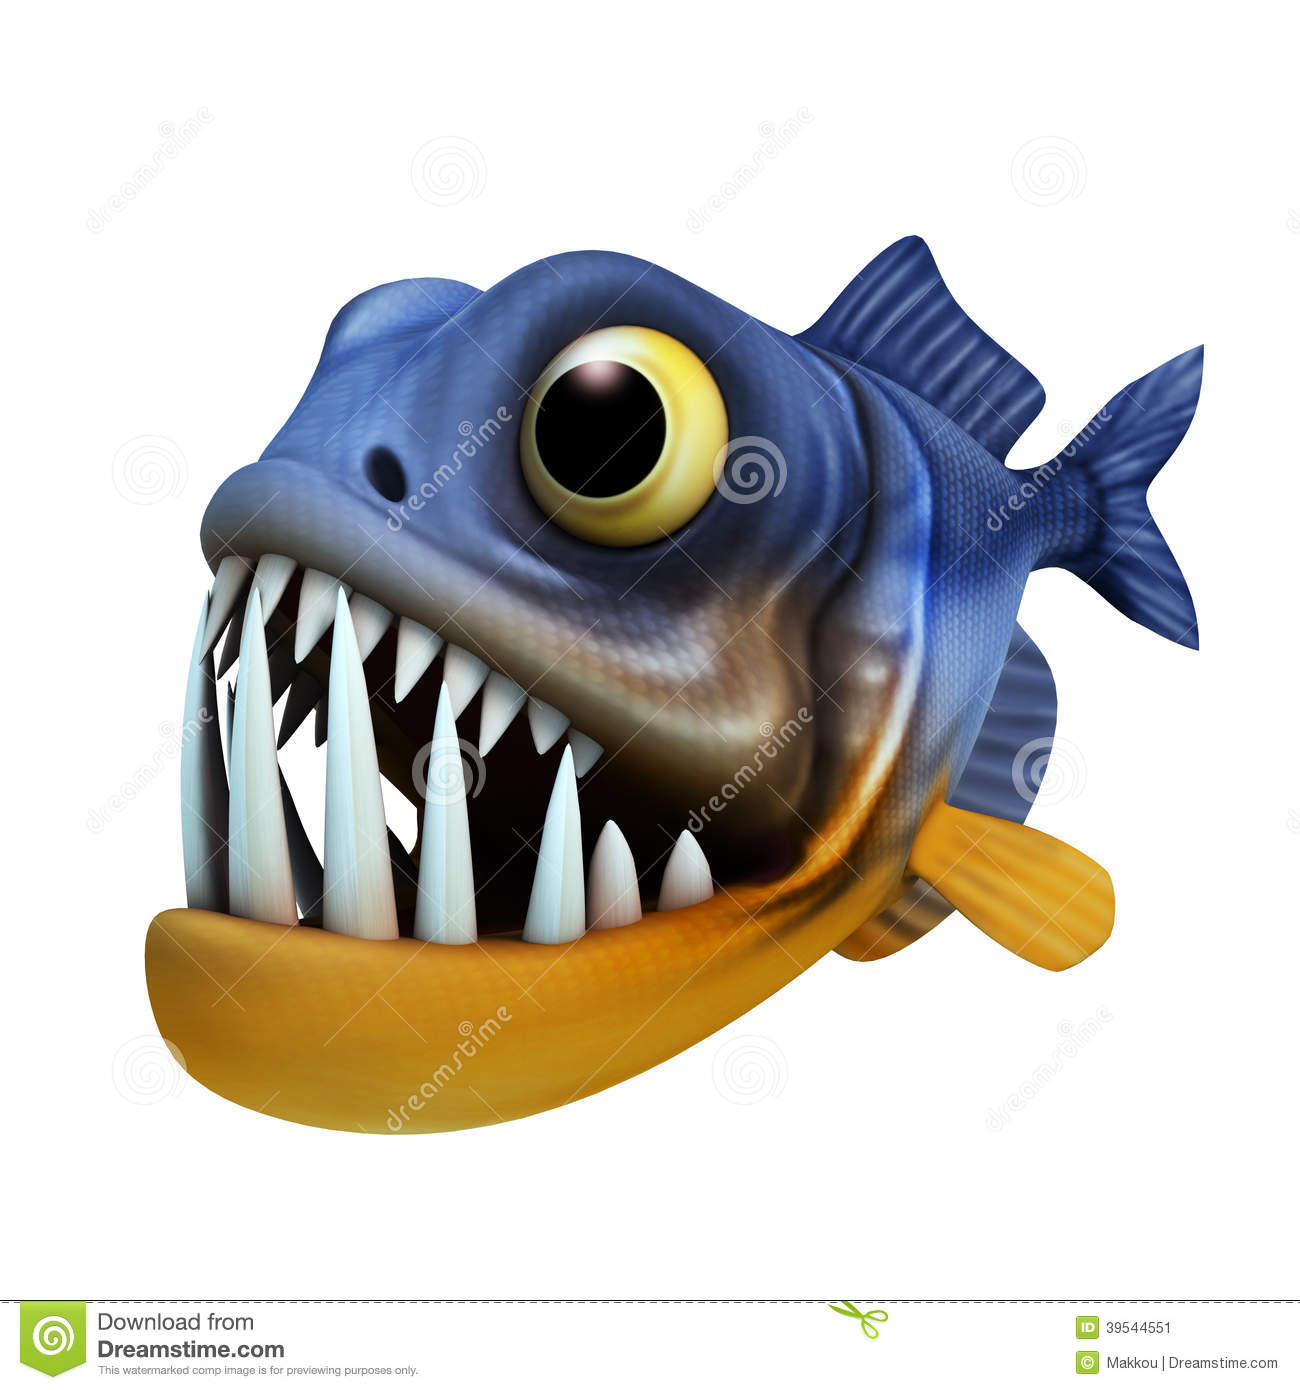 Cartoon Of Piranha Stock Illustration - Image: 39544551